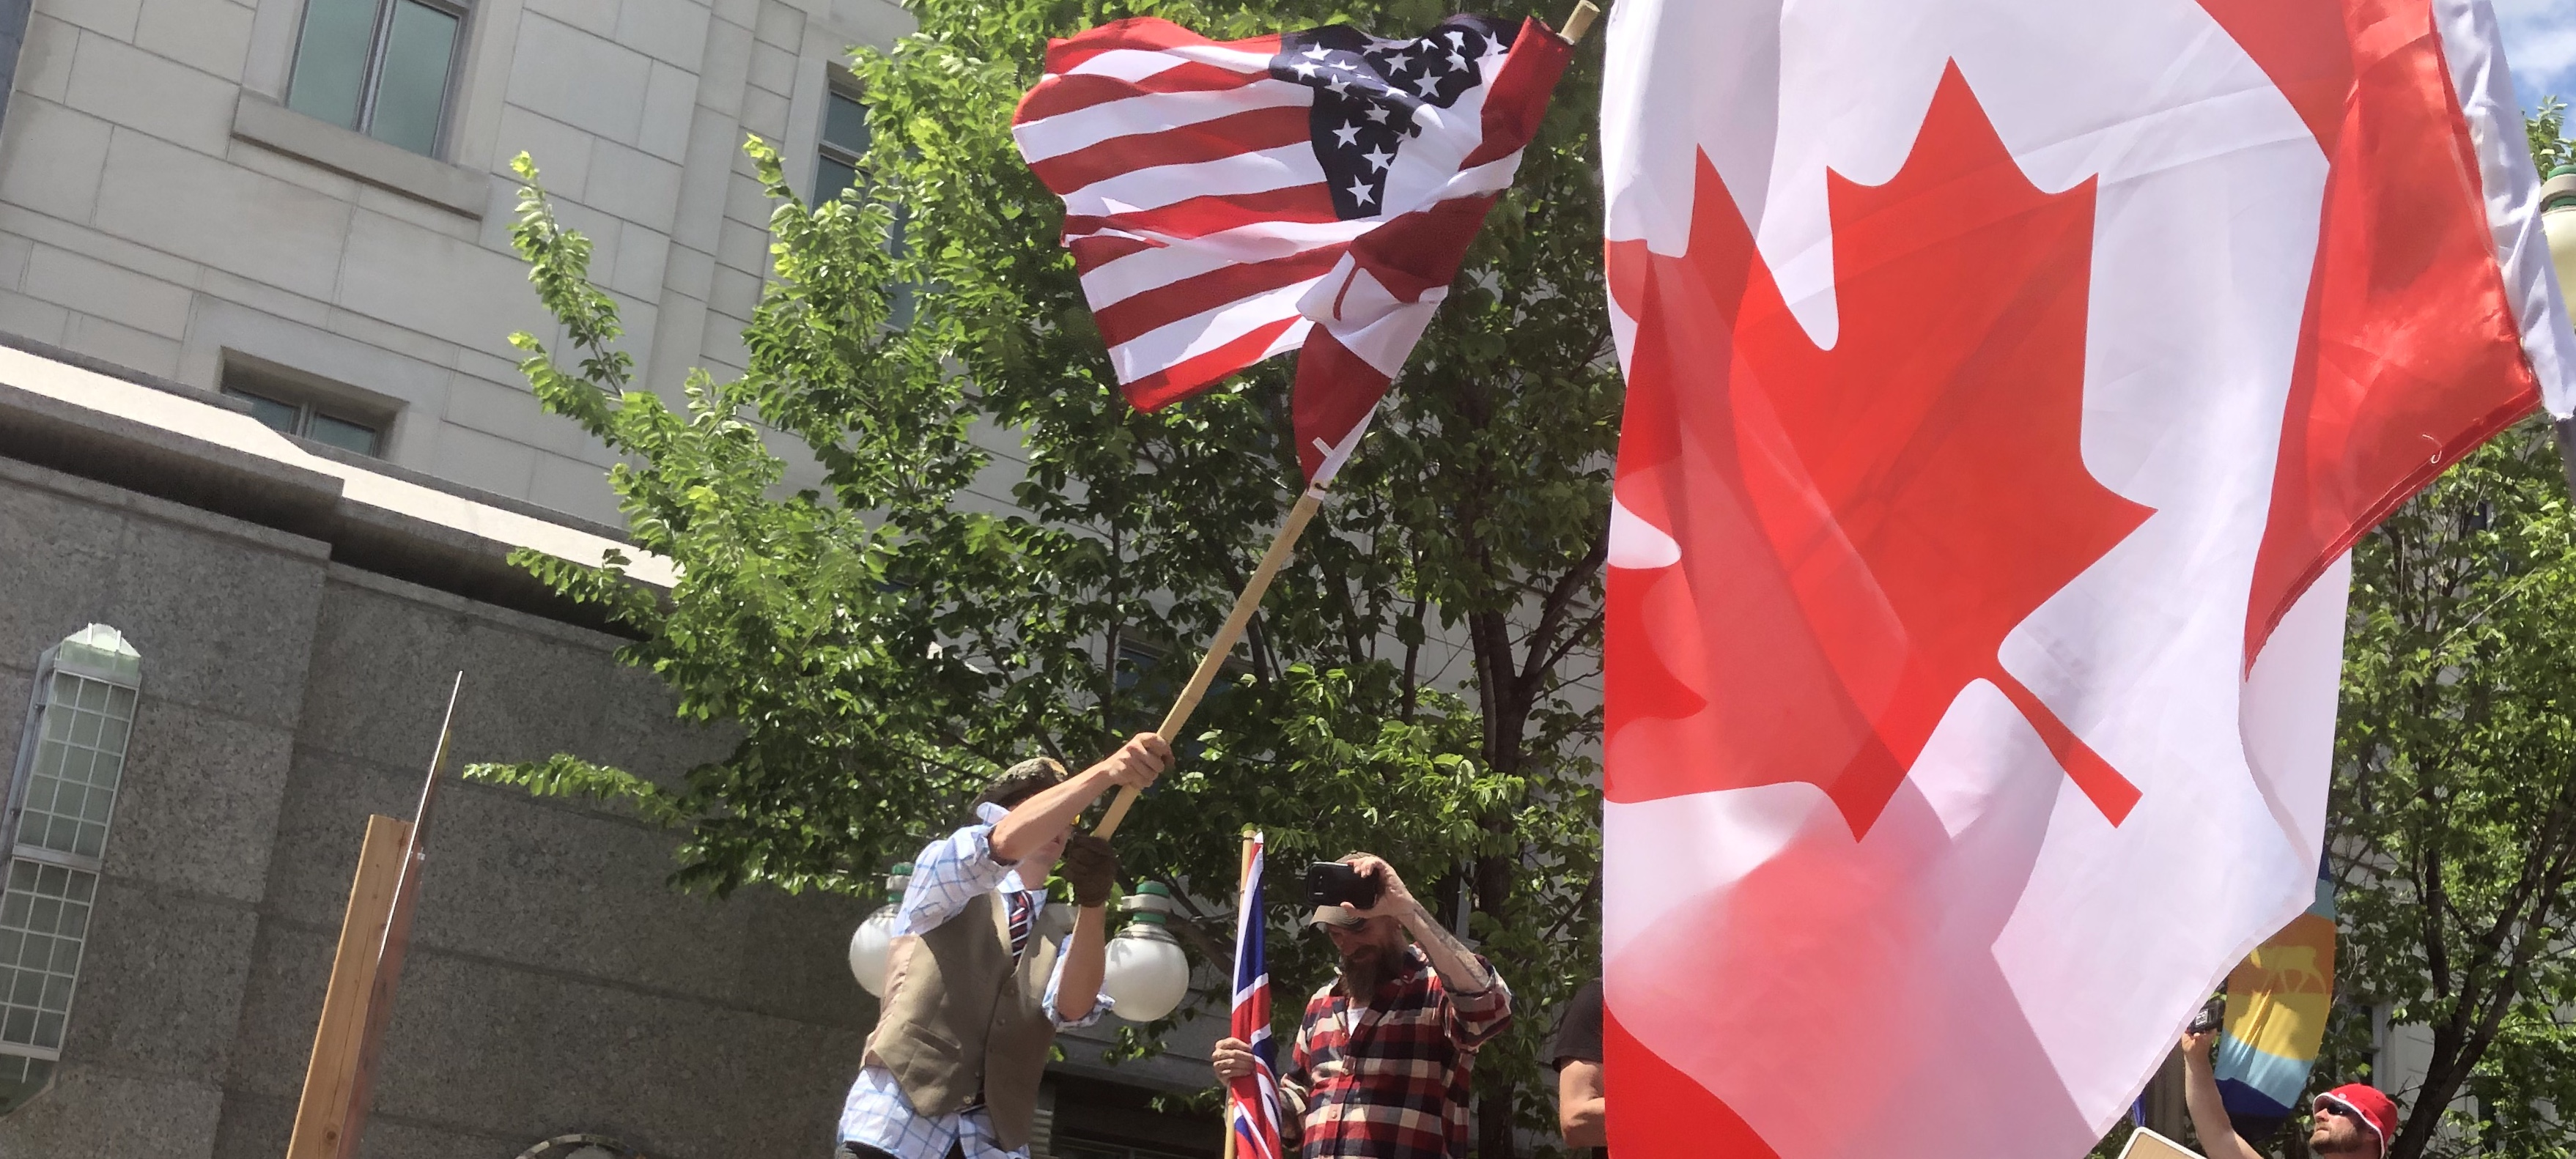 """Demonstrators protest """"corruption"""" in the Canadian government of Prime Minister Justin Trudeau, in Ottawa, Canada on July 1, 2020. Daily Caller photo by Janet Krayden"""